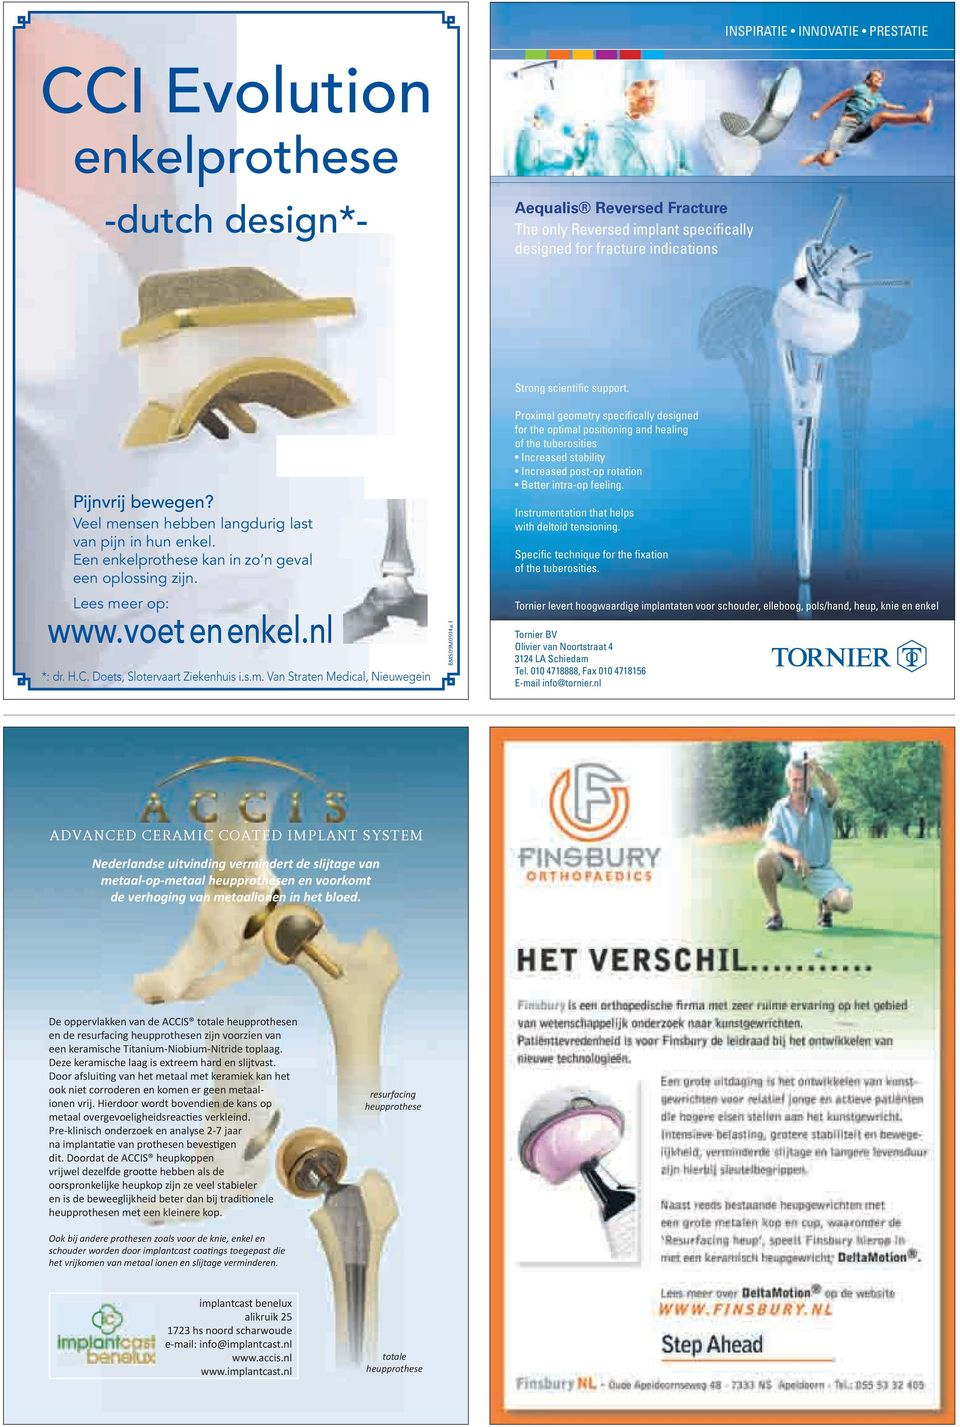 1 Strong scientific support. Proximal geometry specifically designed for the optimal positioning and healing of the tuberosities Increased stability Increased post-op rotation Better intra-op feeling.